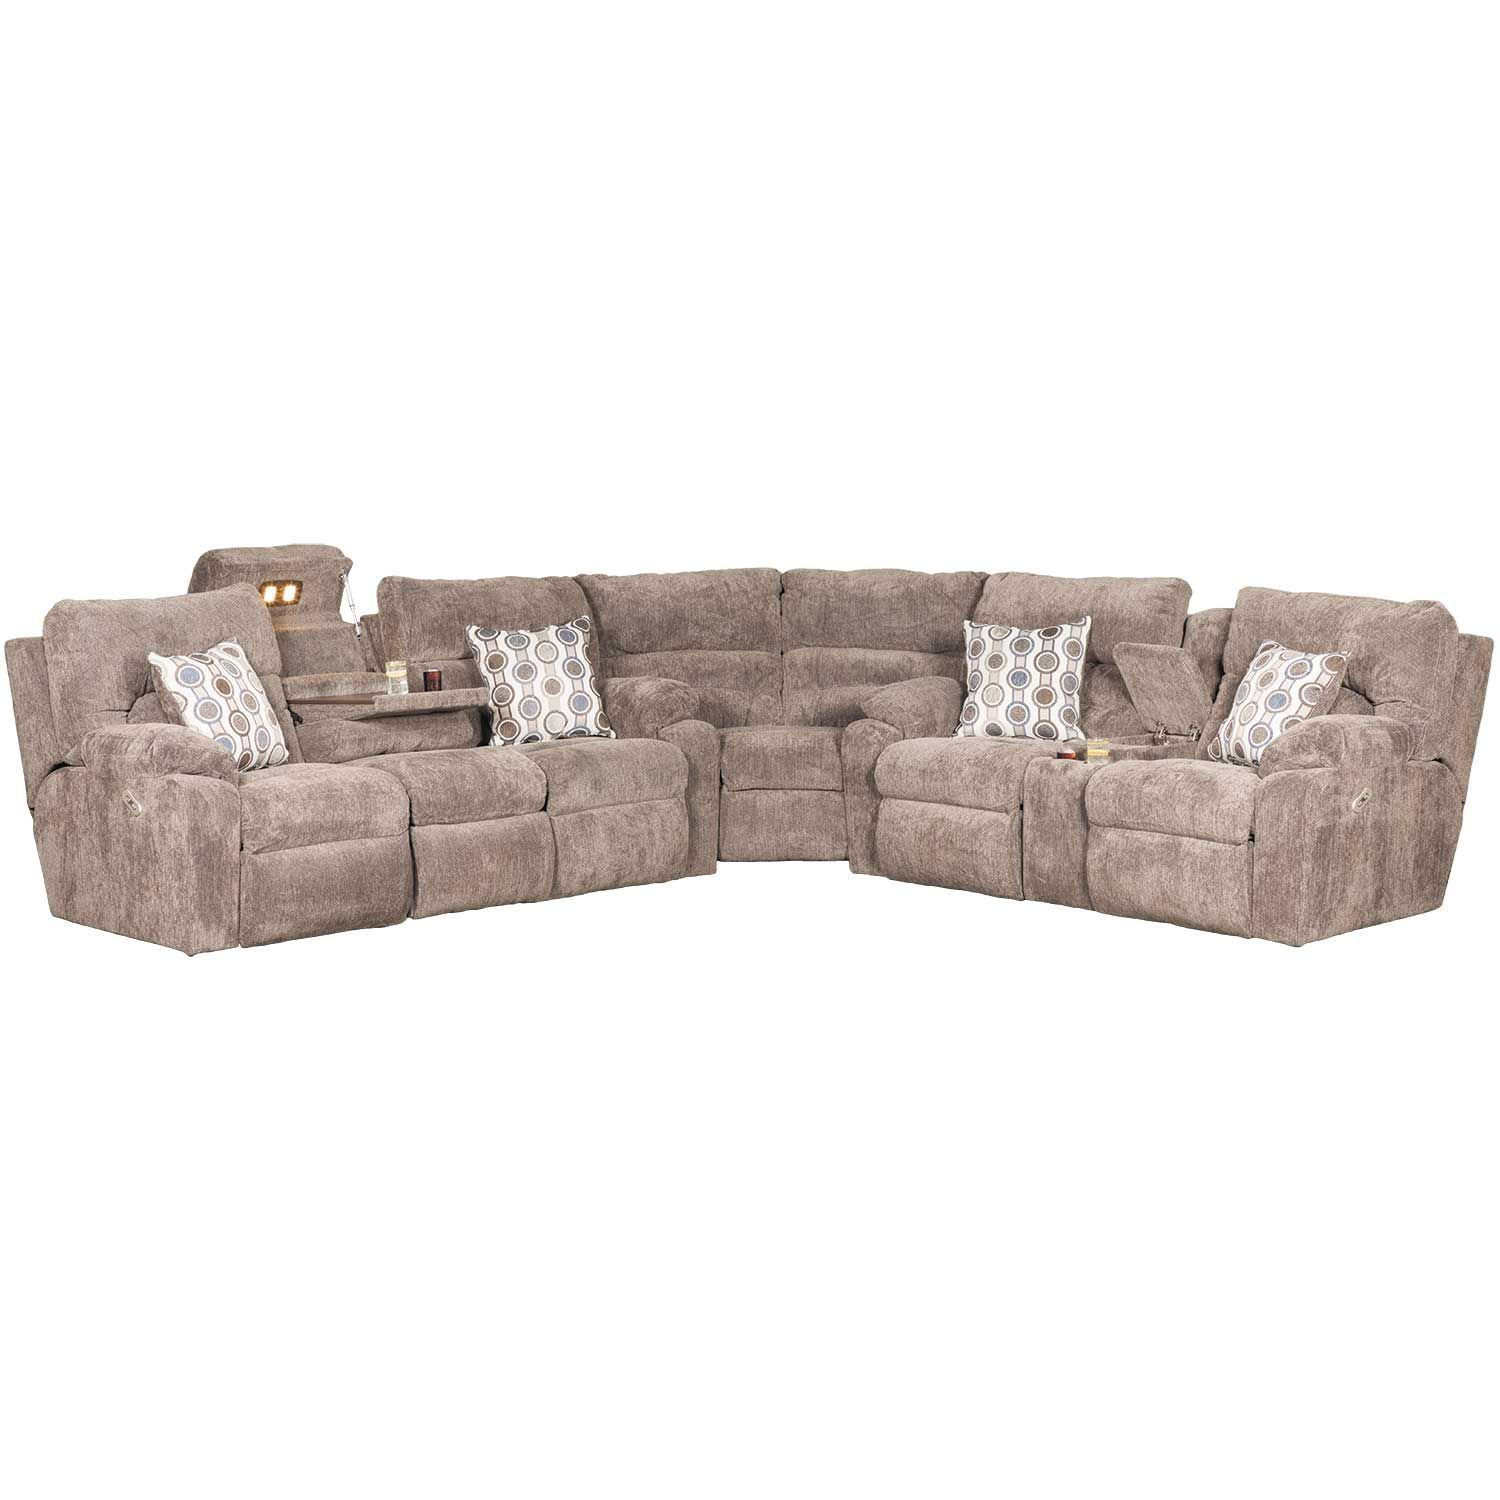 Tribute 3 Piece Power Reclining Sectional with Adjustable Headrests